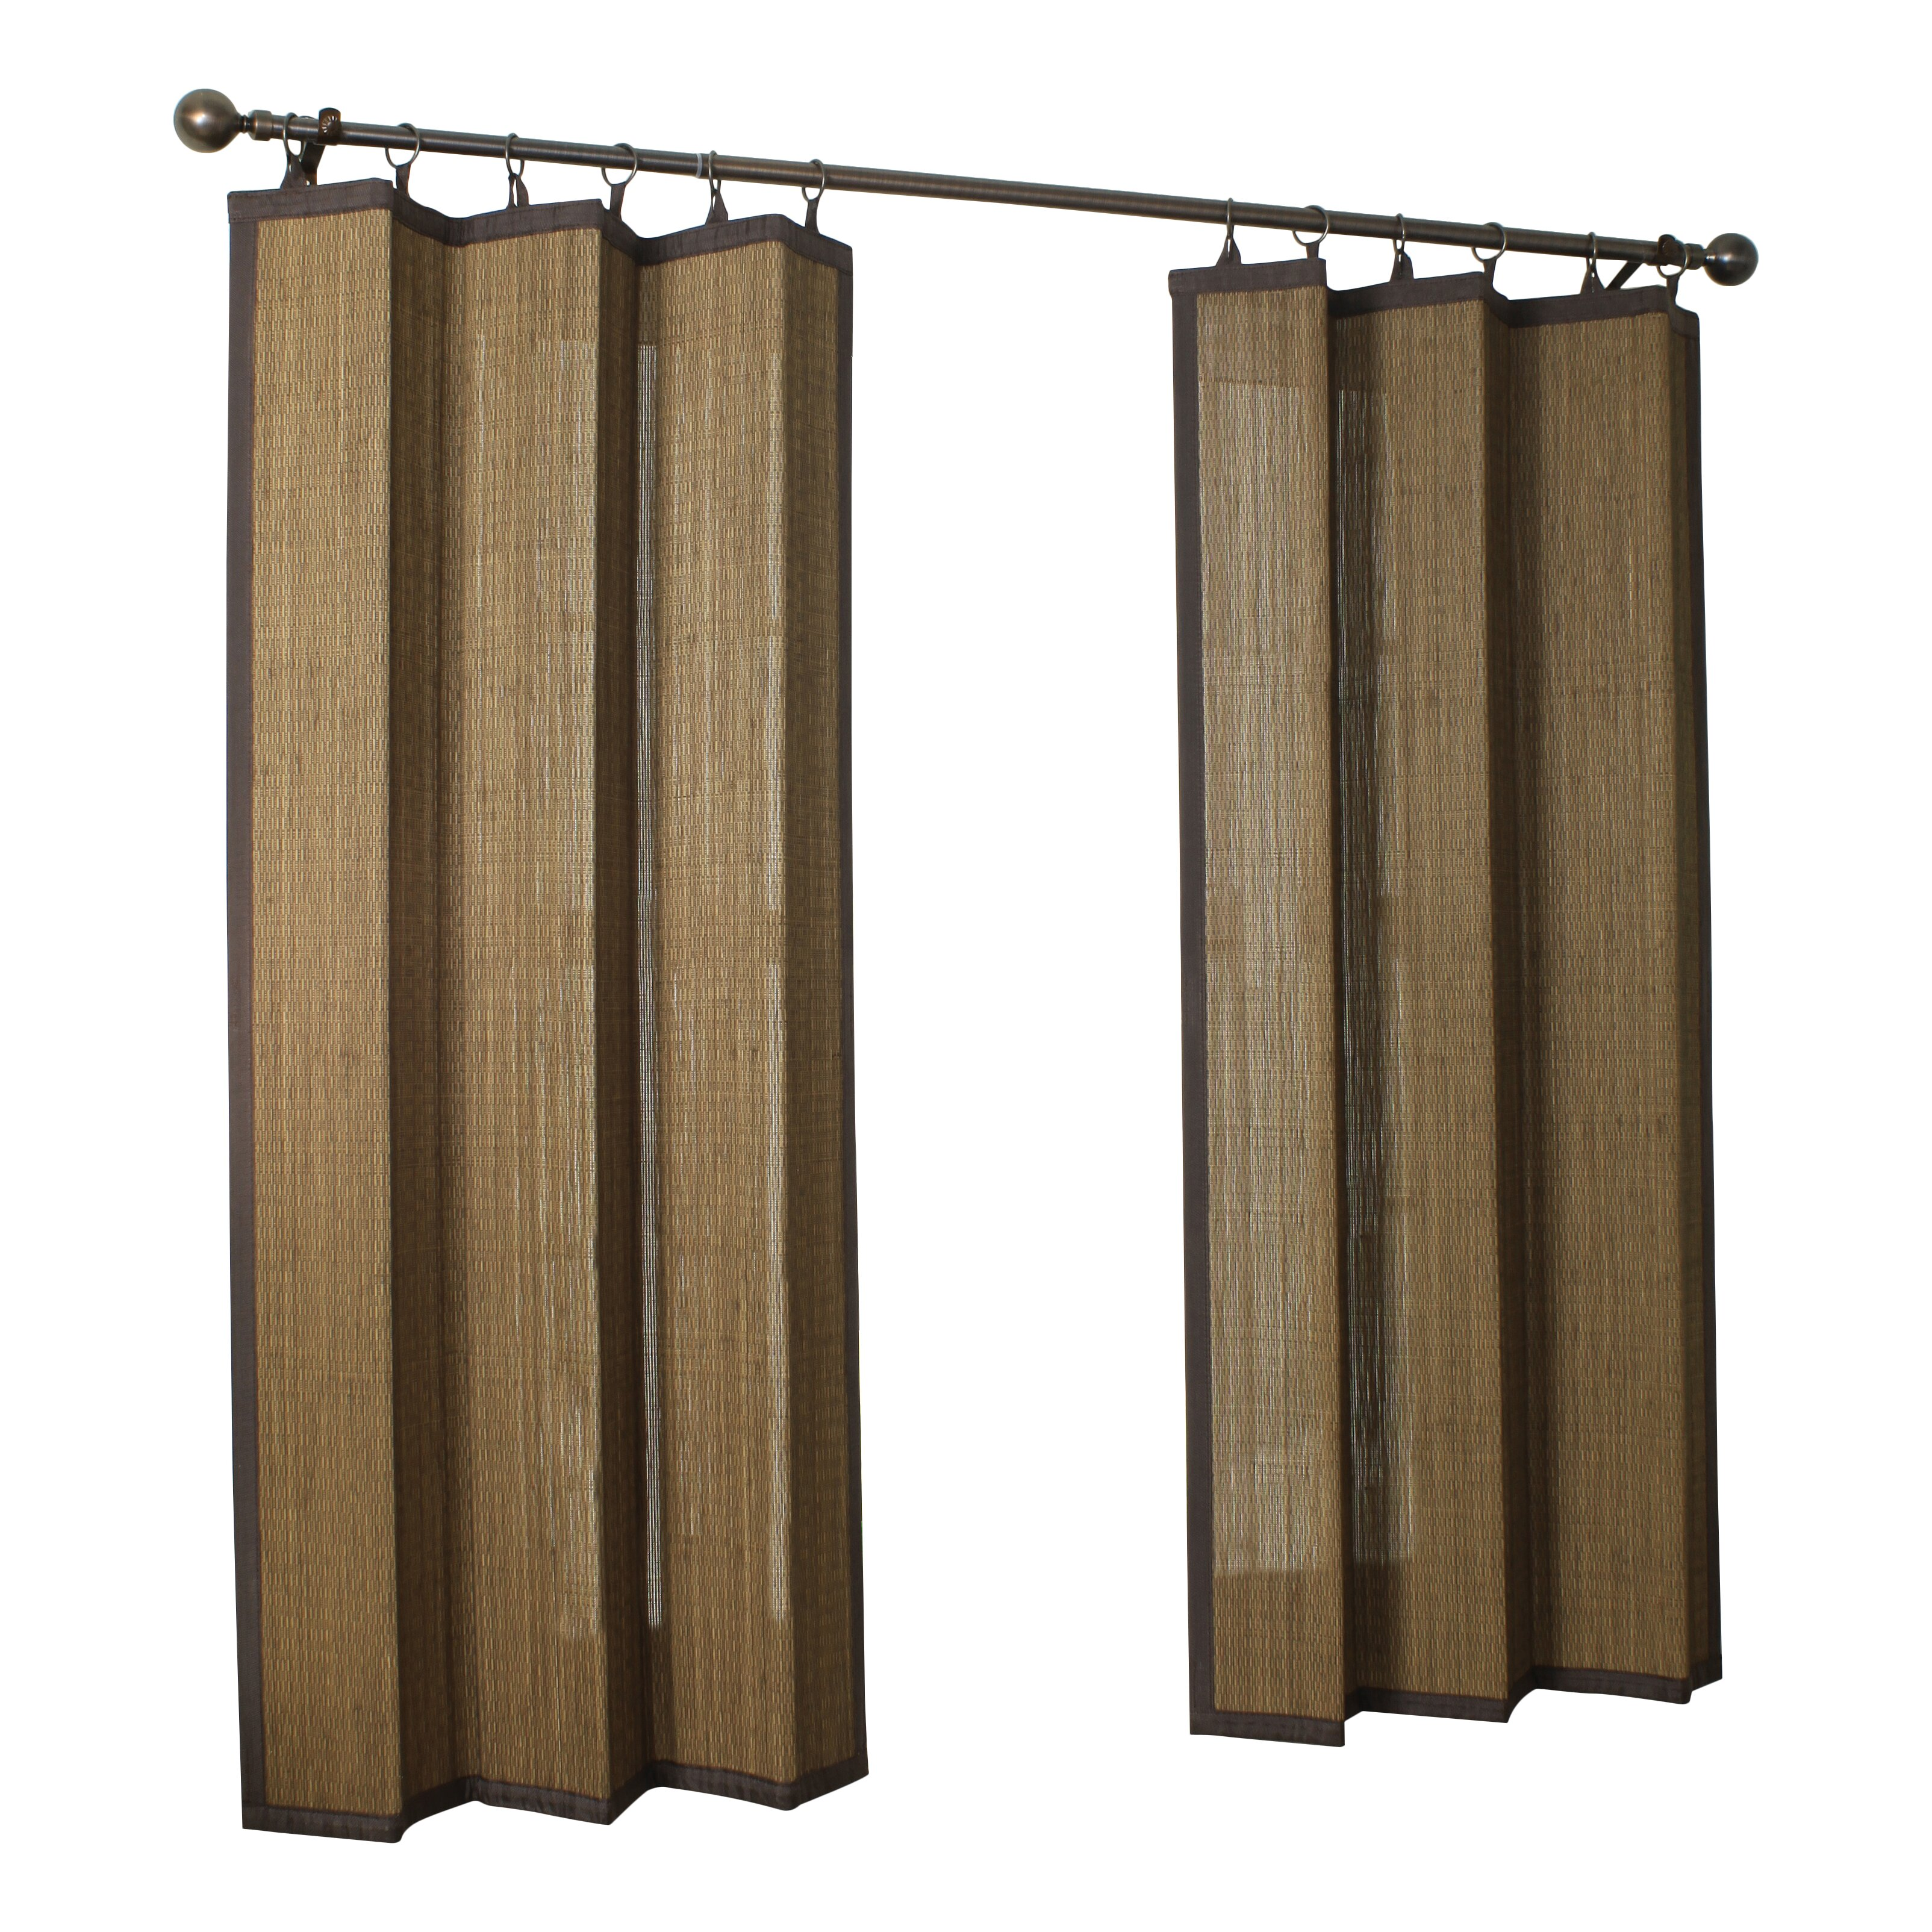 Bamboo curtain rings online kaufen grohandel brown for Drapes or curtains difference